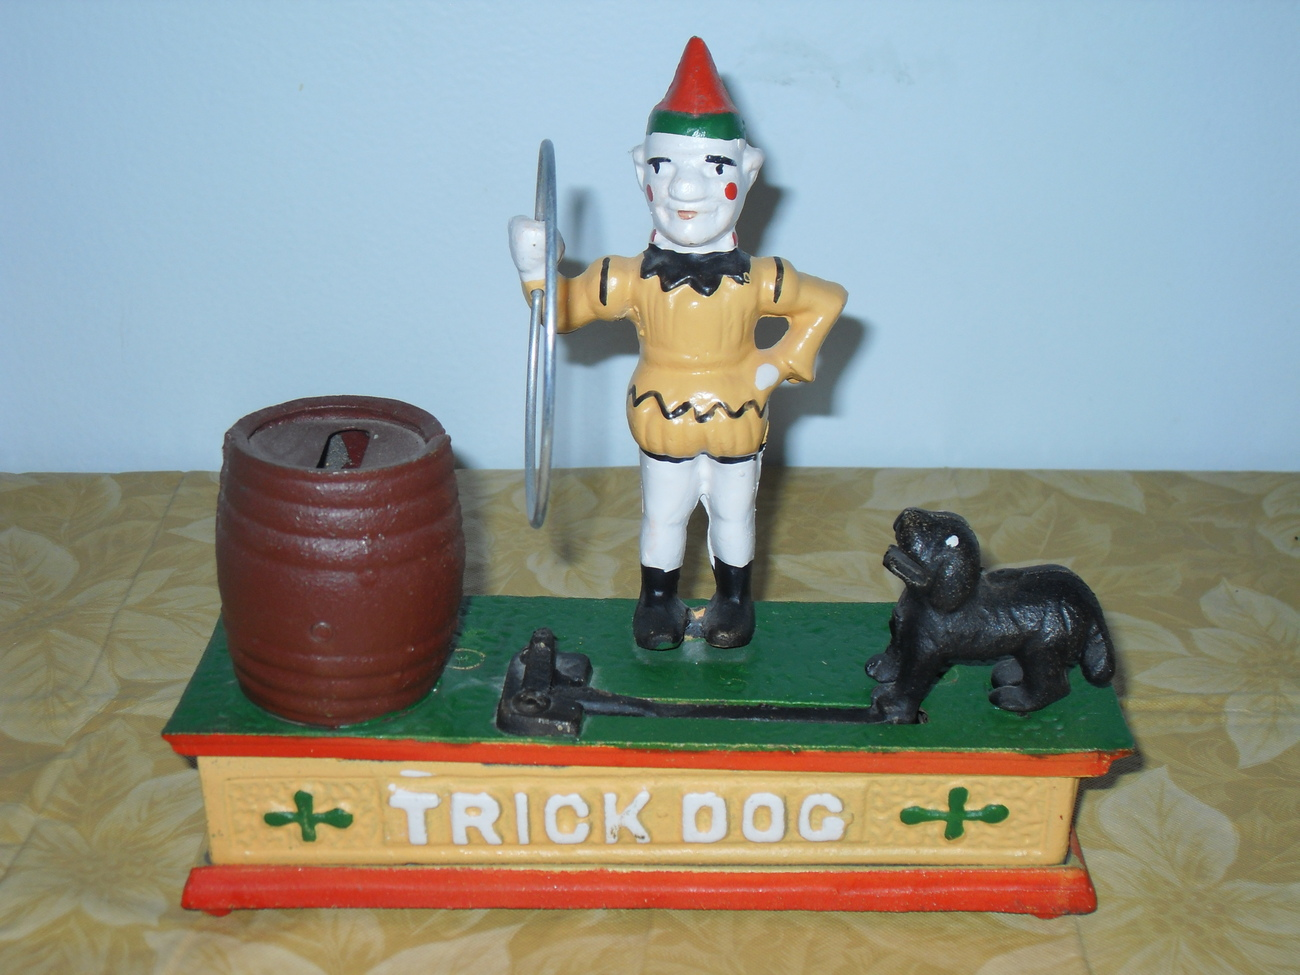 Vintage Trick Dog Cast Iron Mechanical Bank